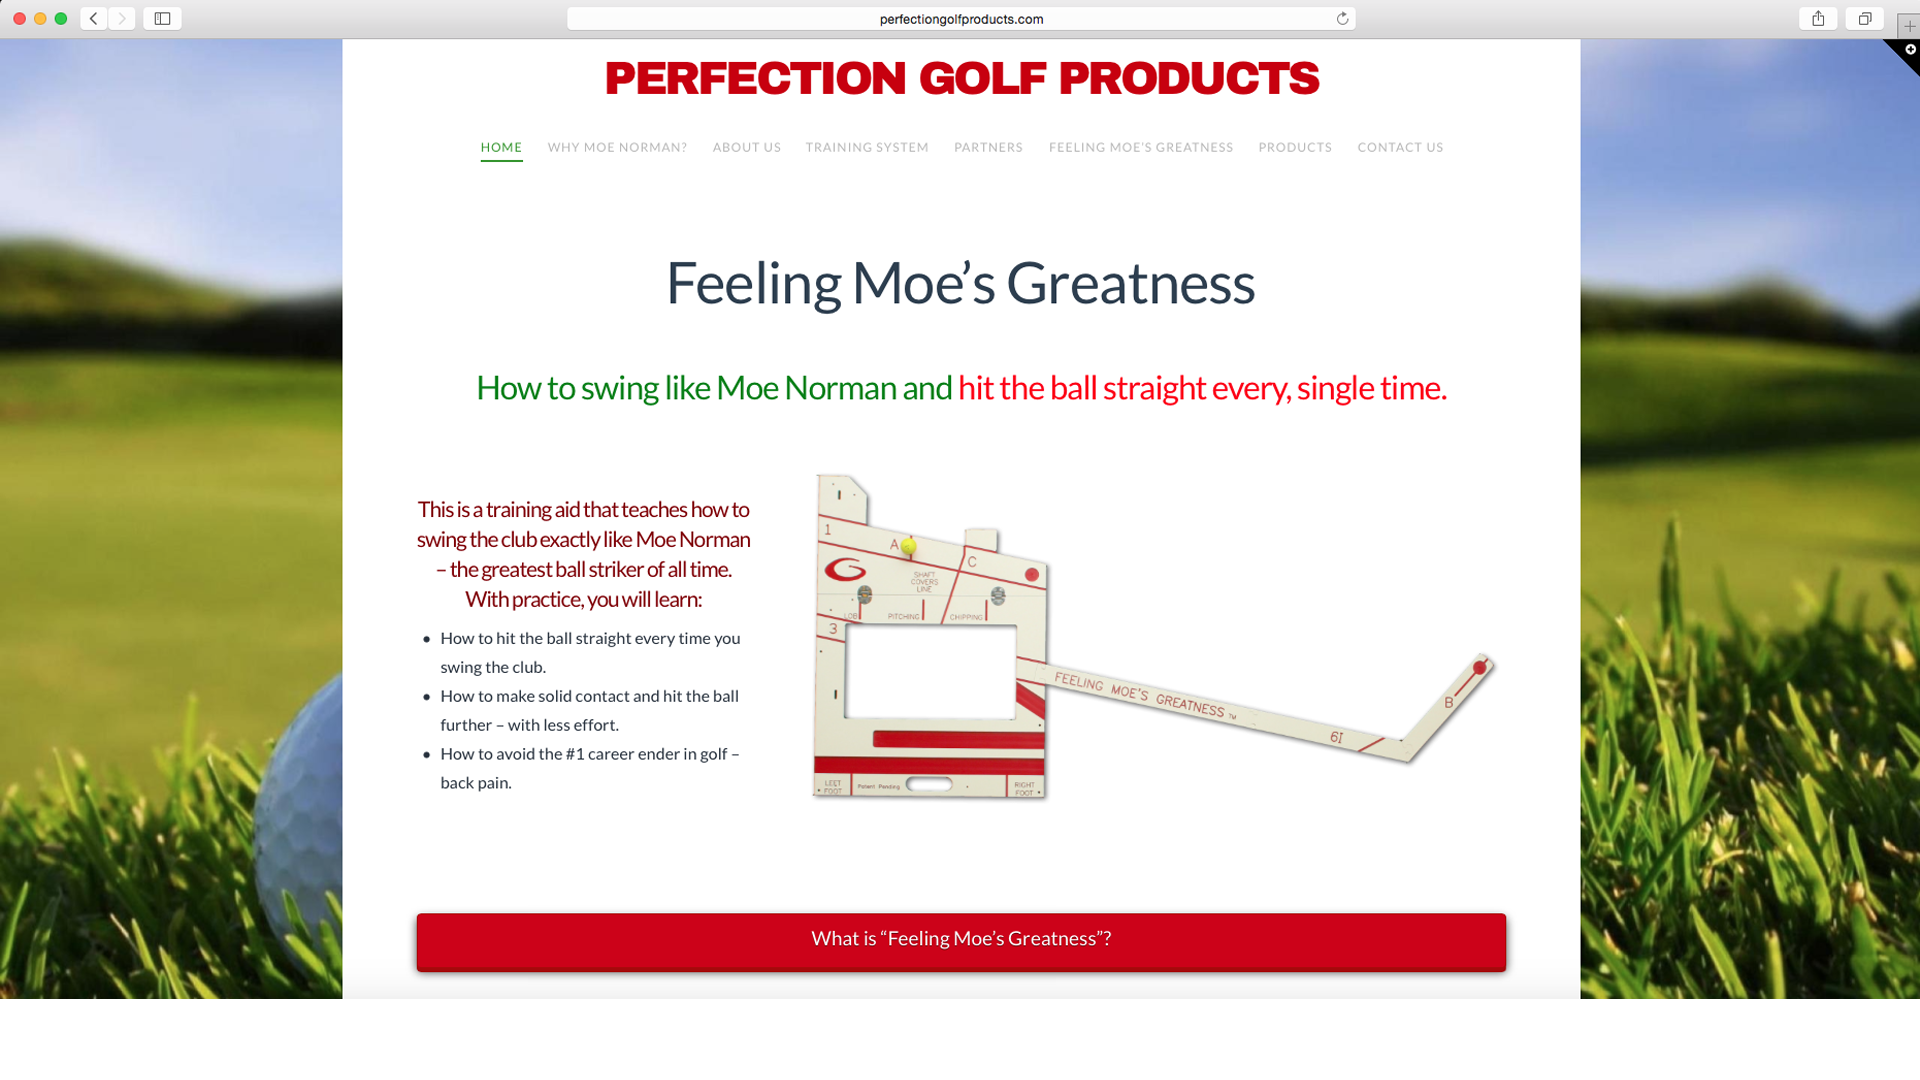 Perfection Golf Products